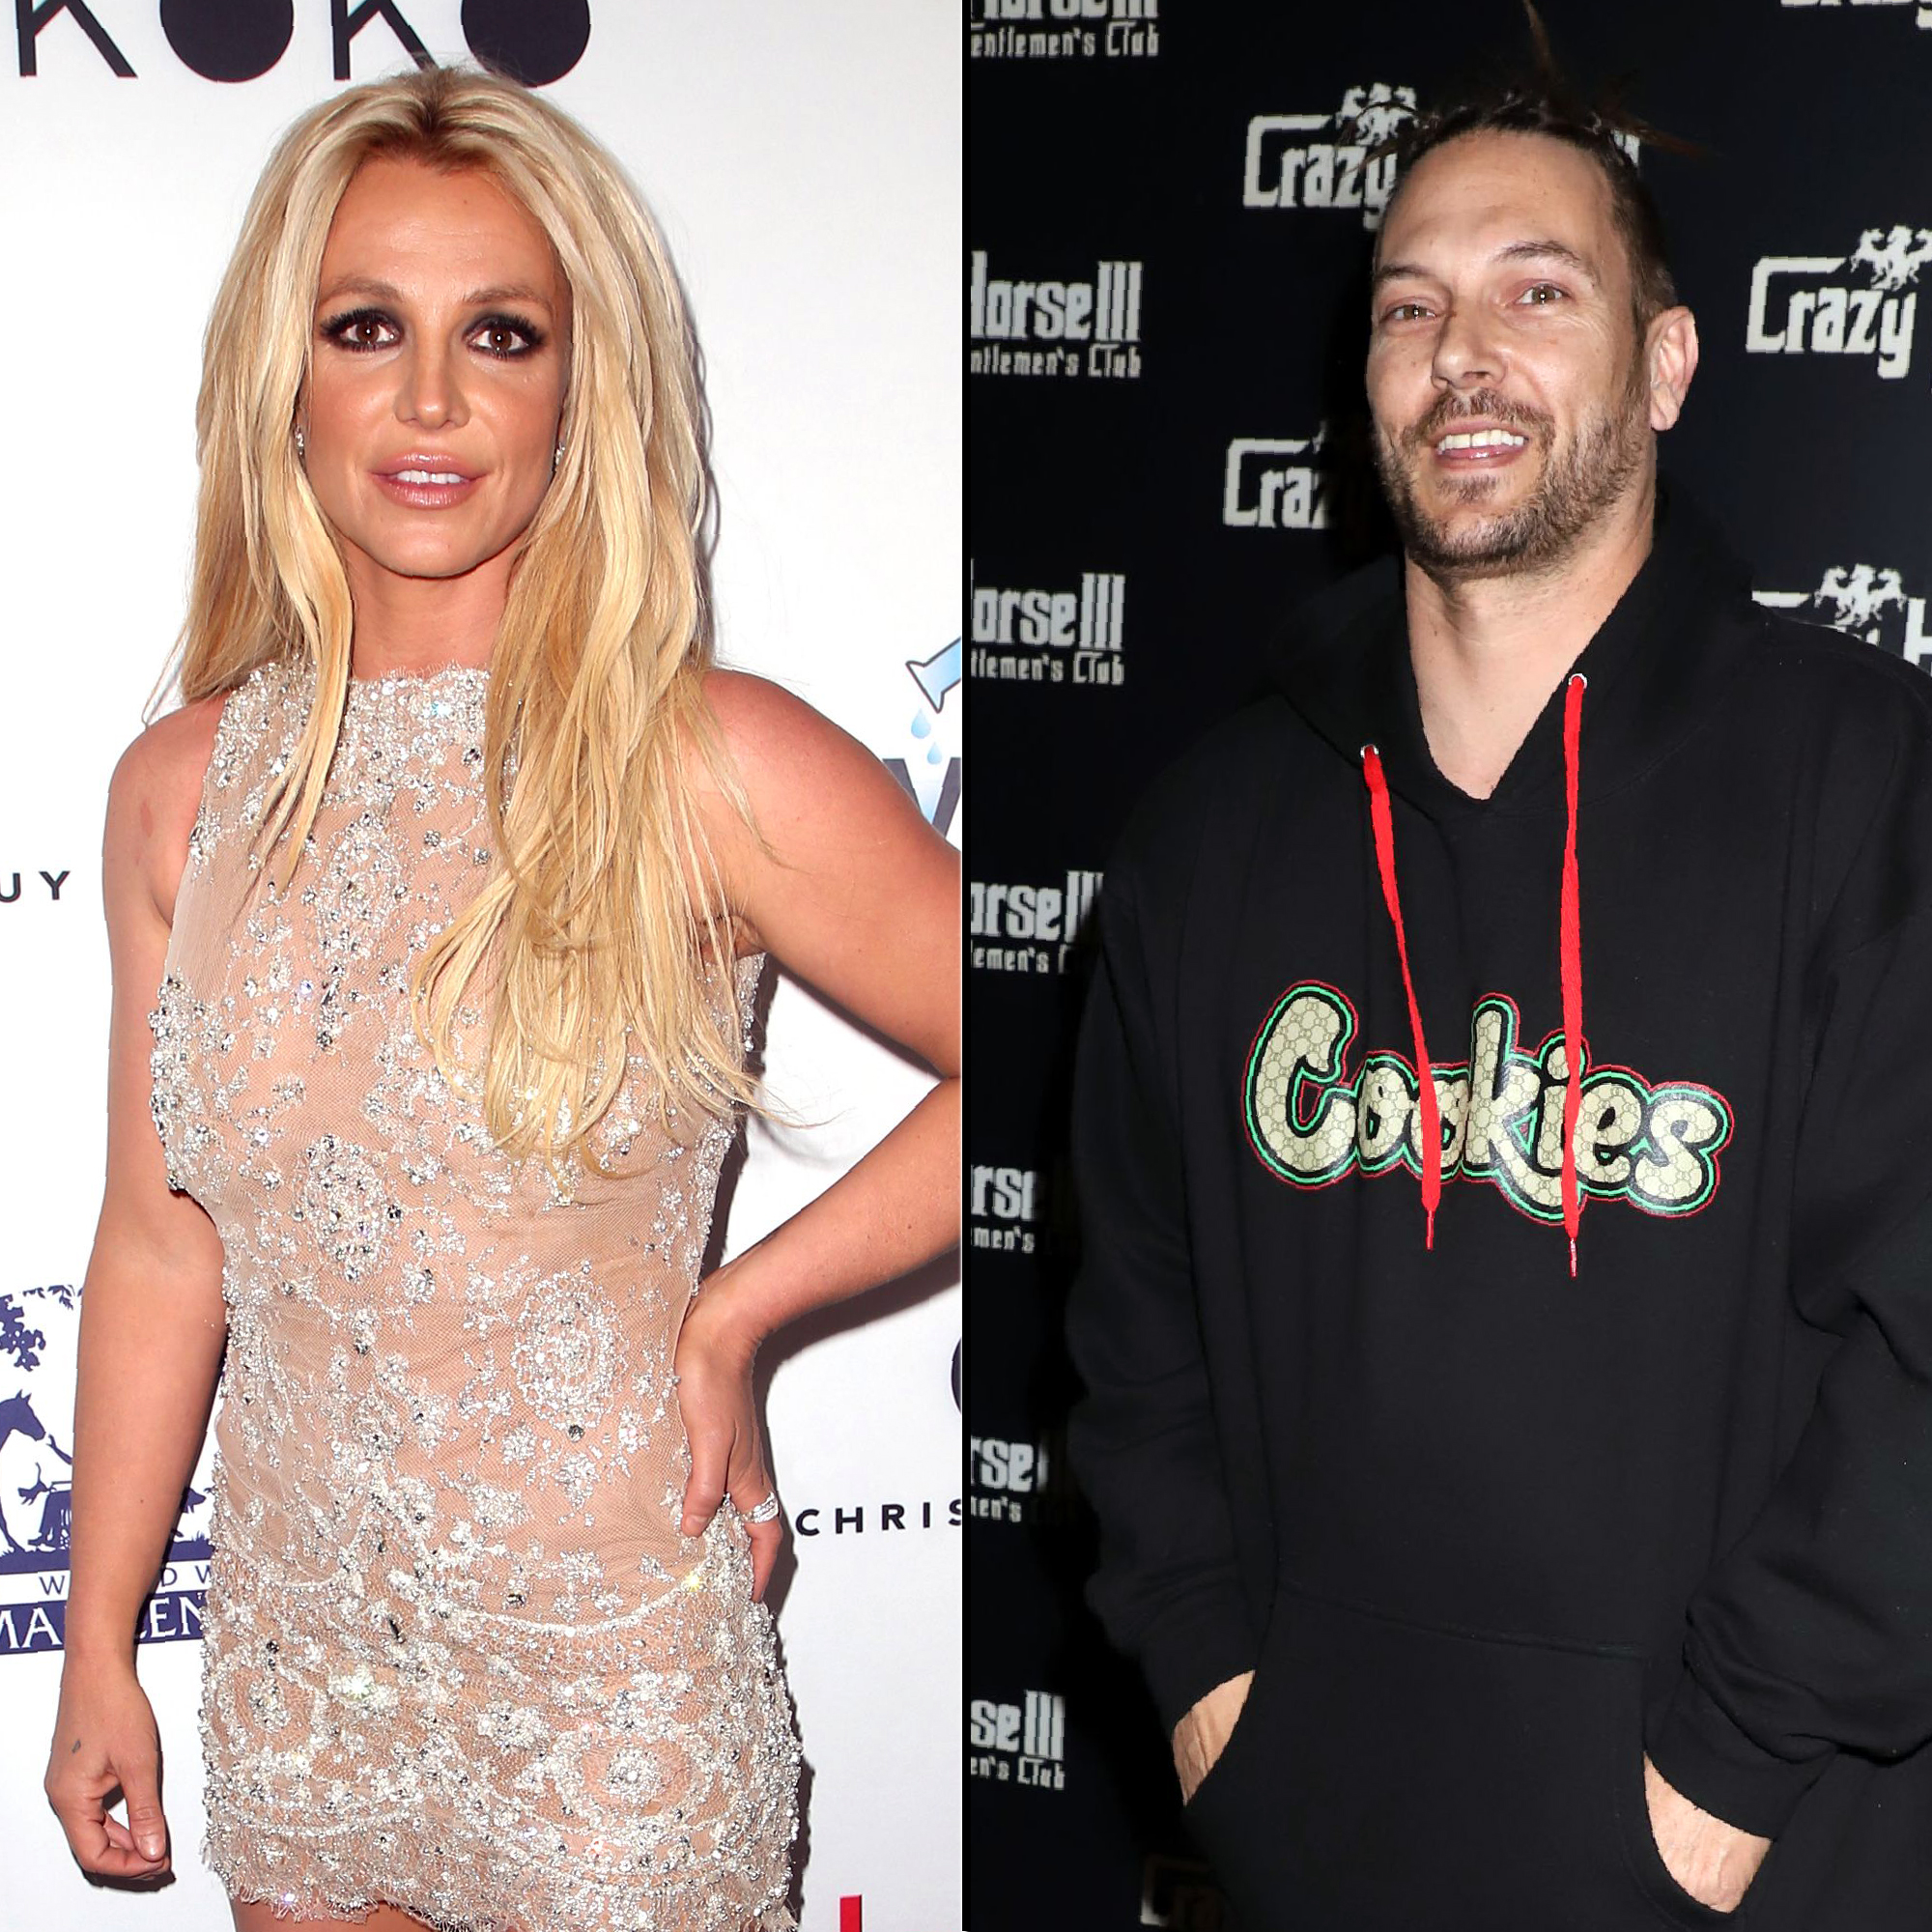 Britney Spears Former Photographer Unearths Letter She Wrote About Conservatorship Kevin Federline-.jpg